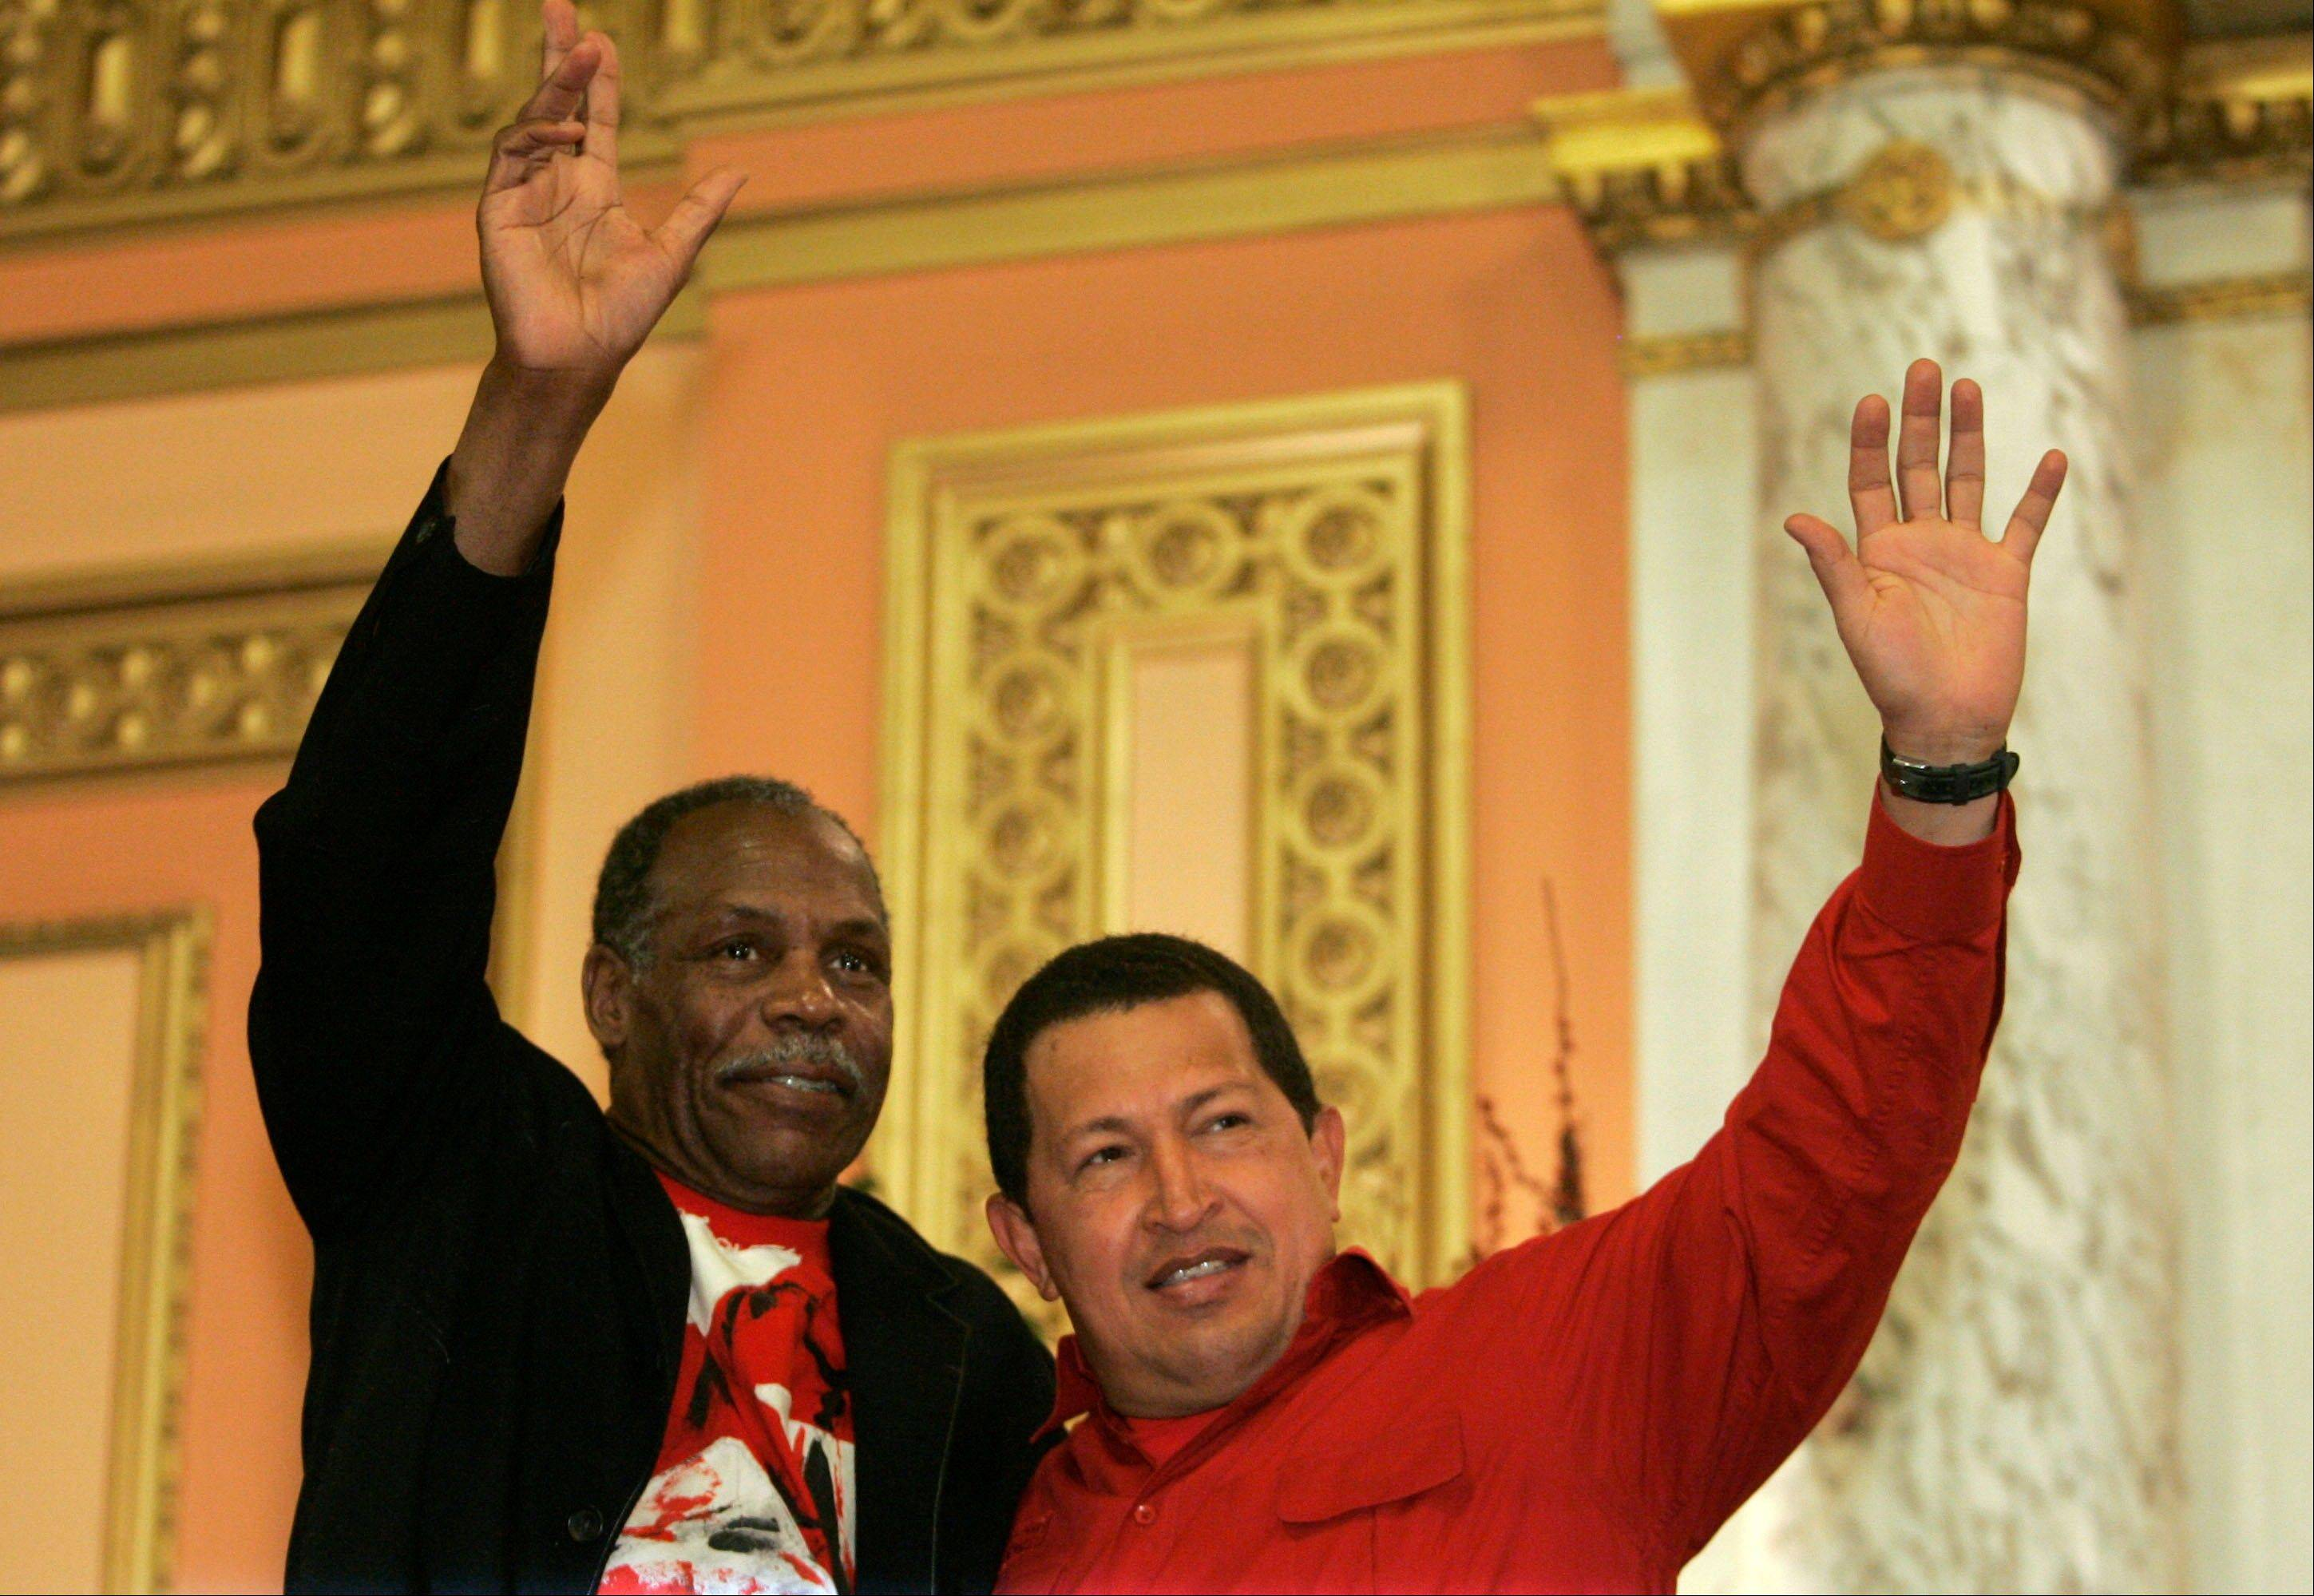 In this Sept. 21, 2006, file photo, Venezuela's President Hugo Chavez, right, and U.S. actor Danny Glover wave to a crowd gathered at the Mount Olive Baptist Church in the Harlem neighborhood of New York.